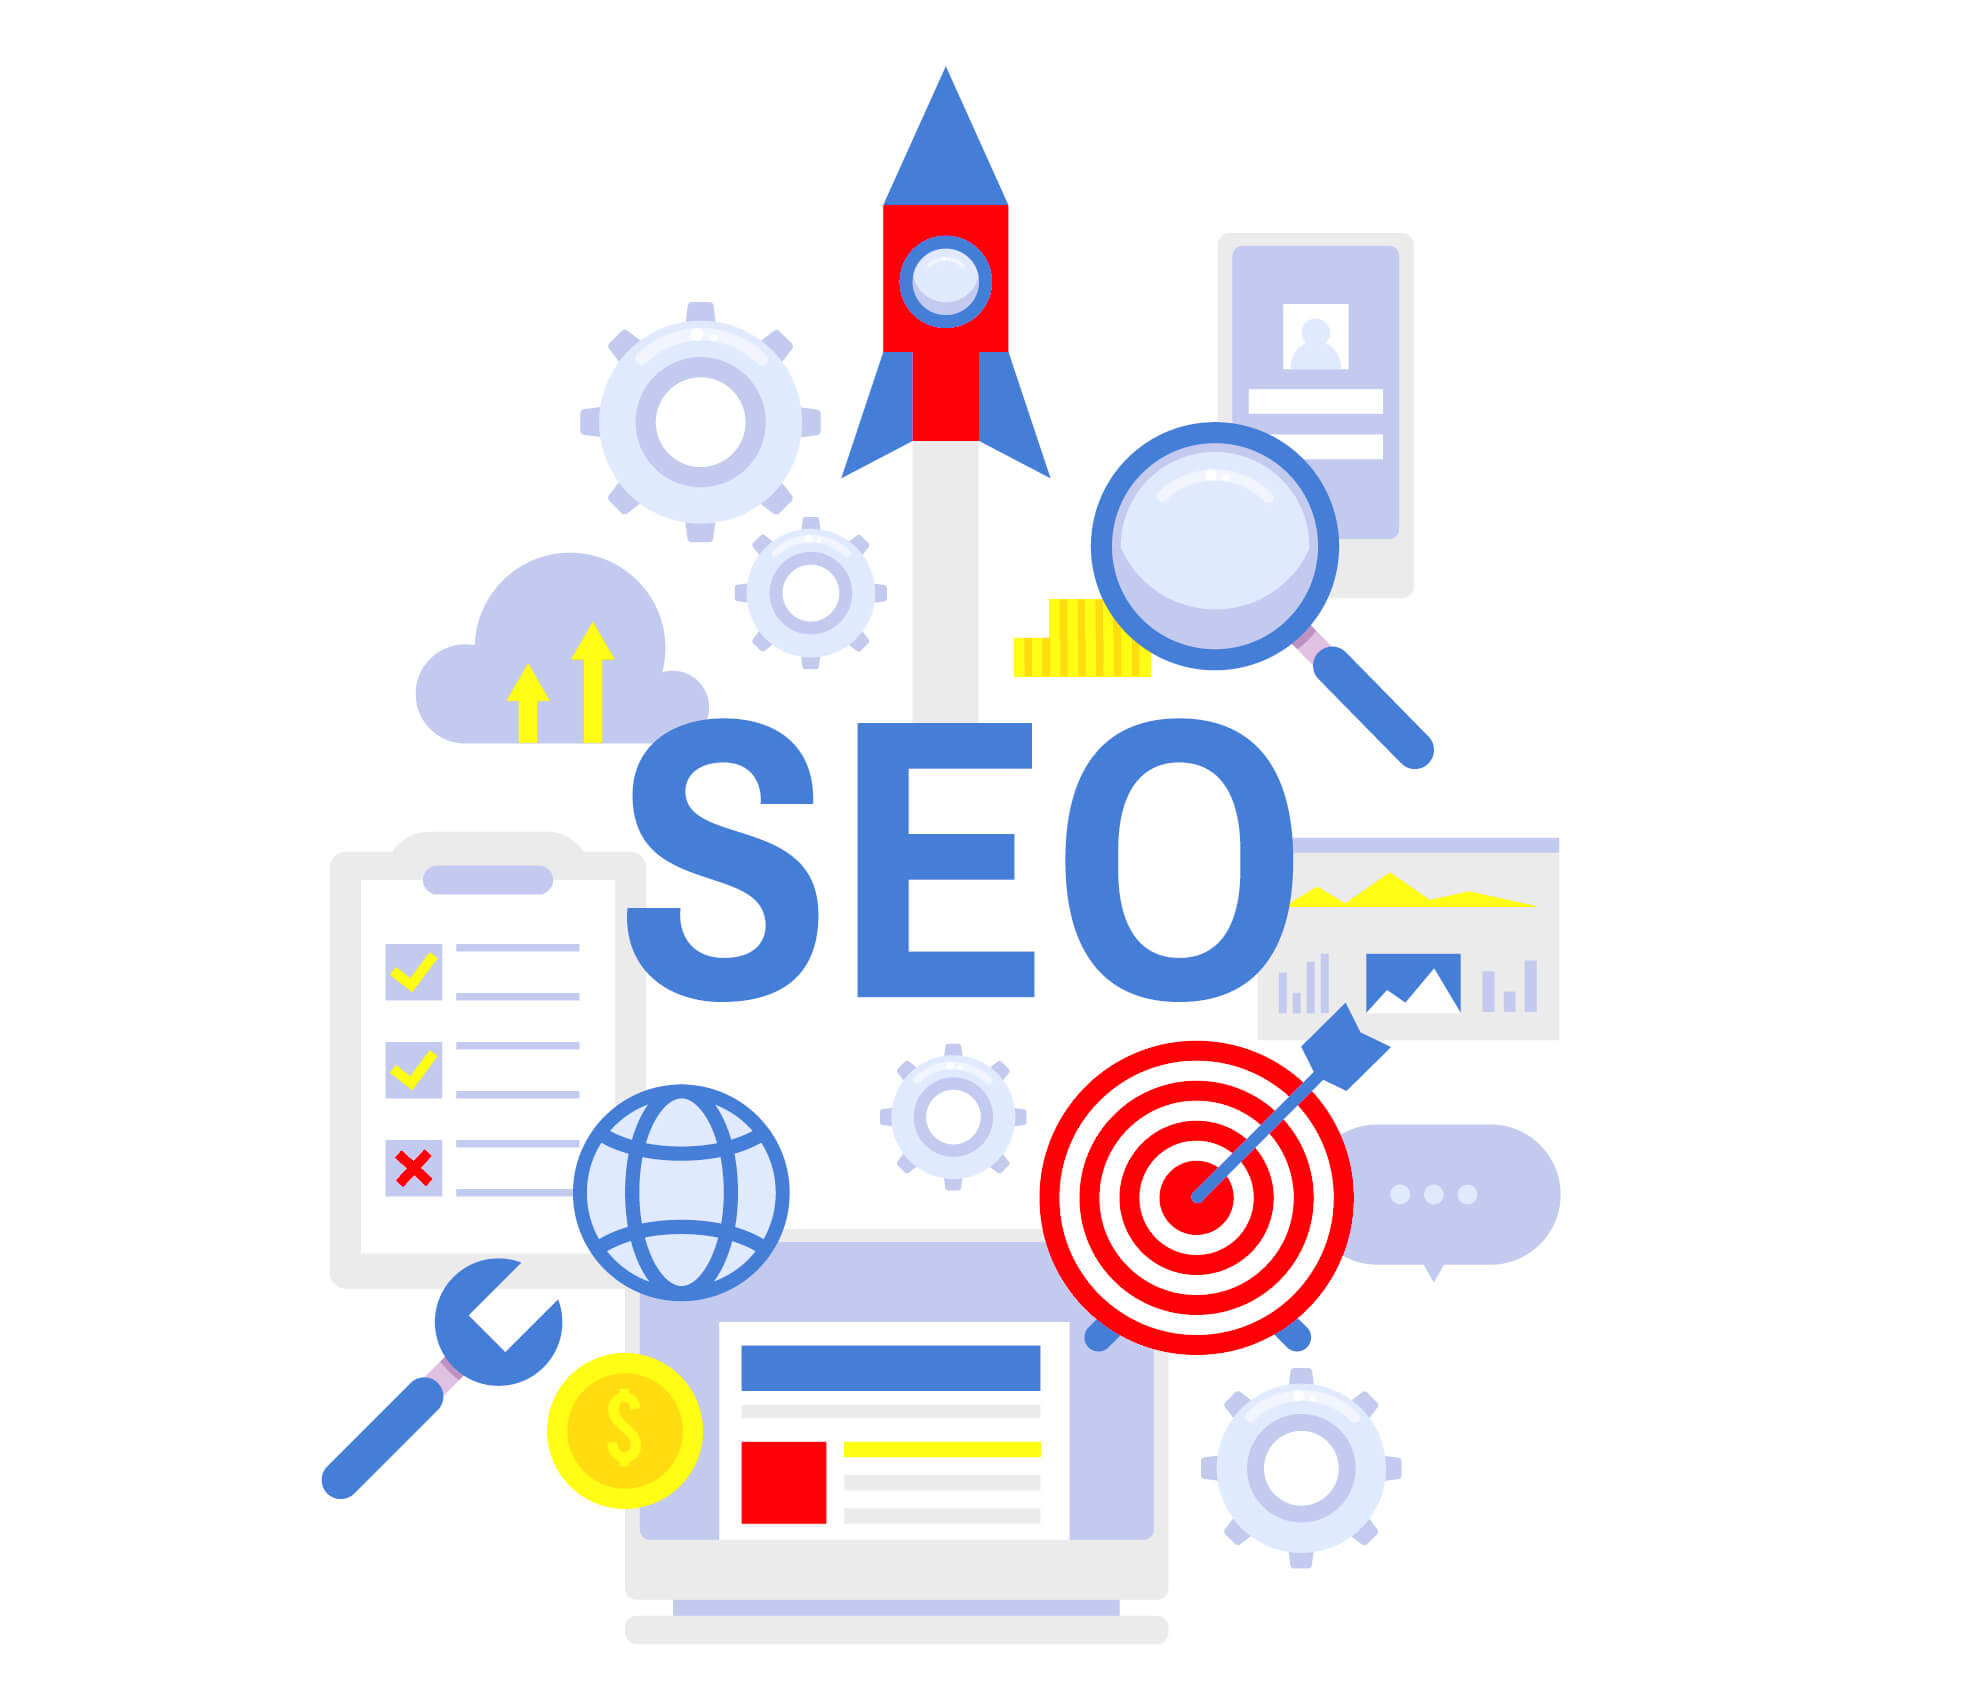 SEO Glossary: Learn Important SEO Terms and Definitions